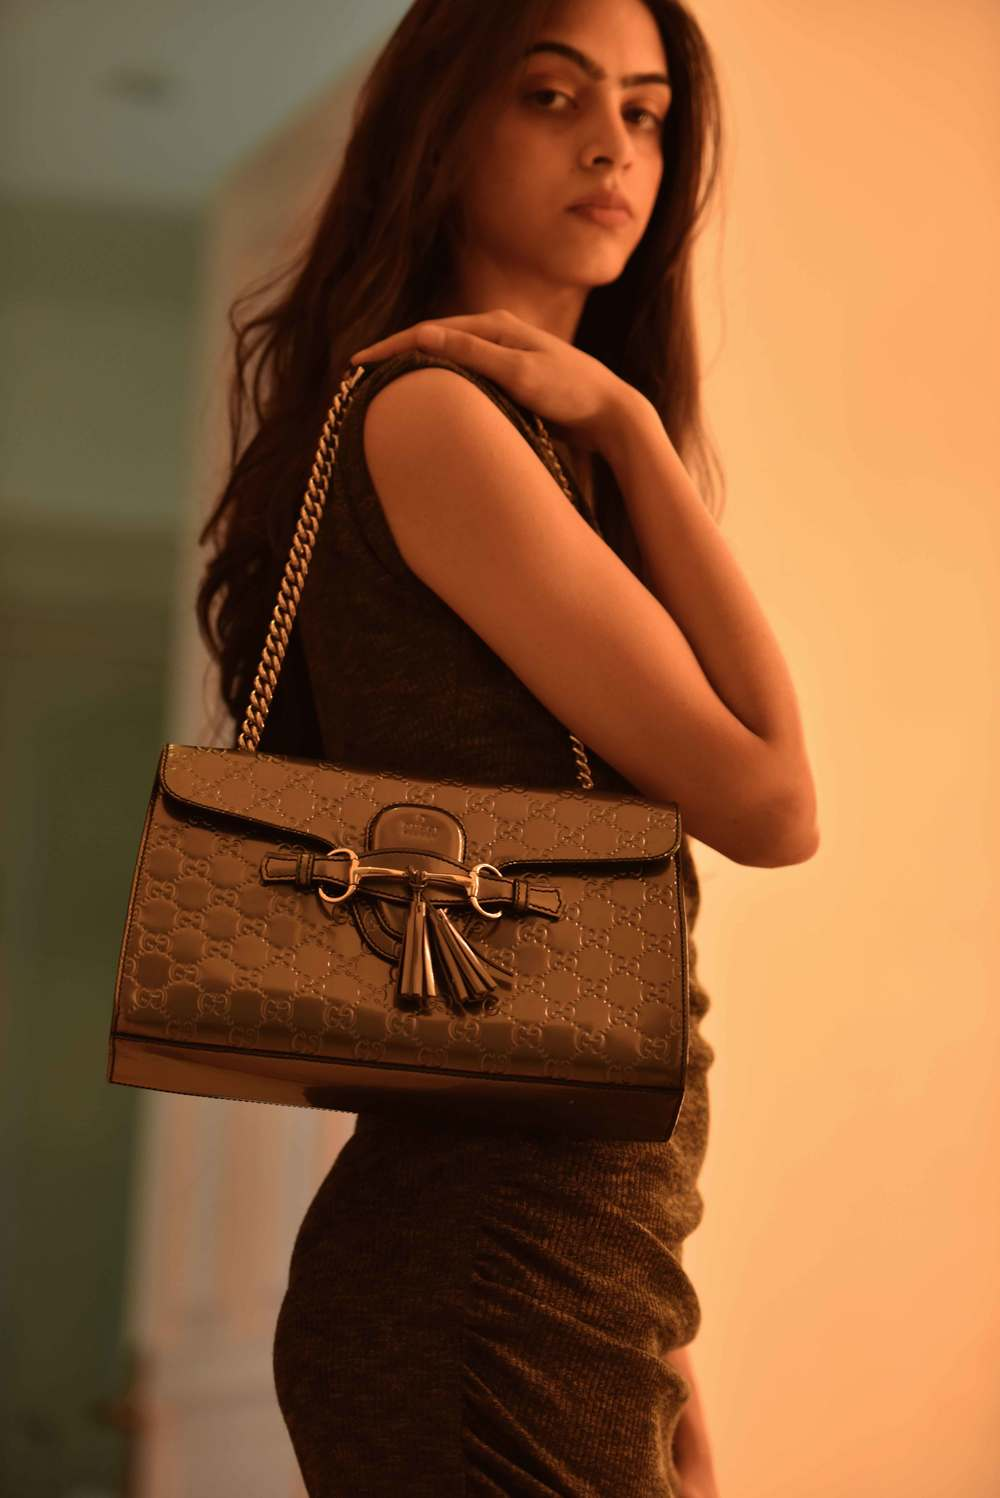 An evening wear look: a basic sheath dress with a Gucci evening bag. Model: Mannat Dhaliwal, Image©sourcingstyle.com